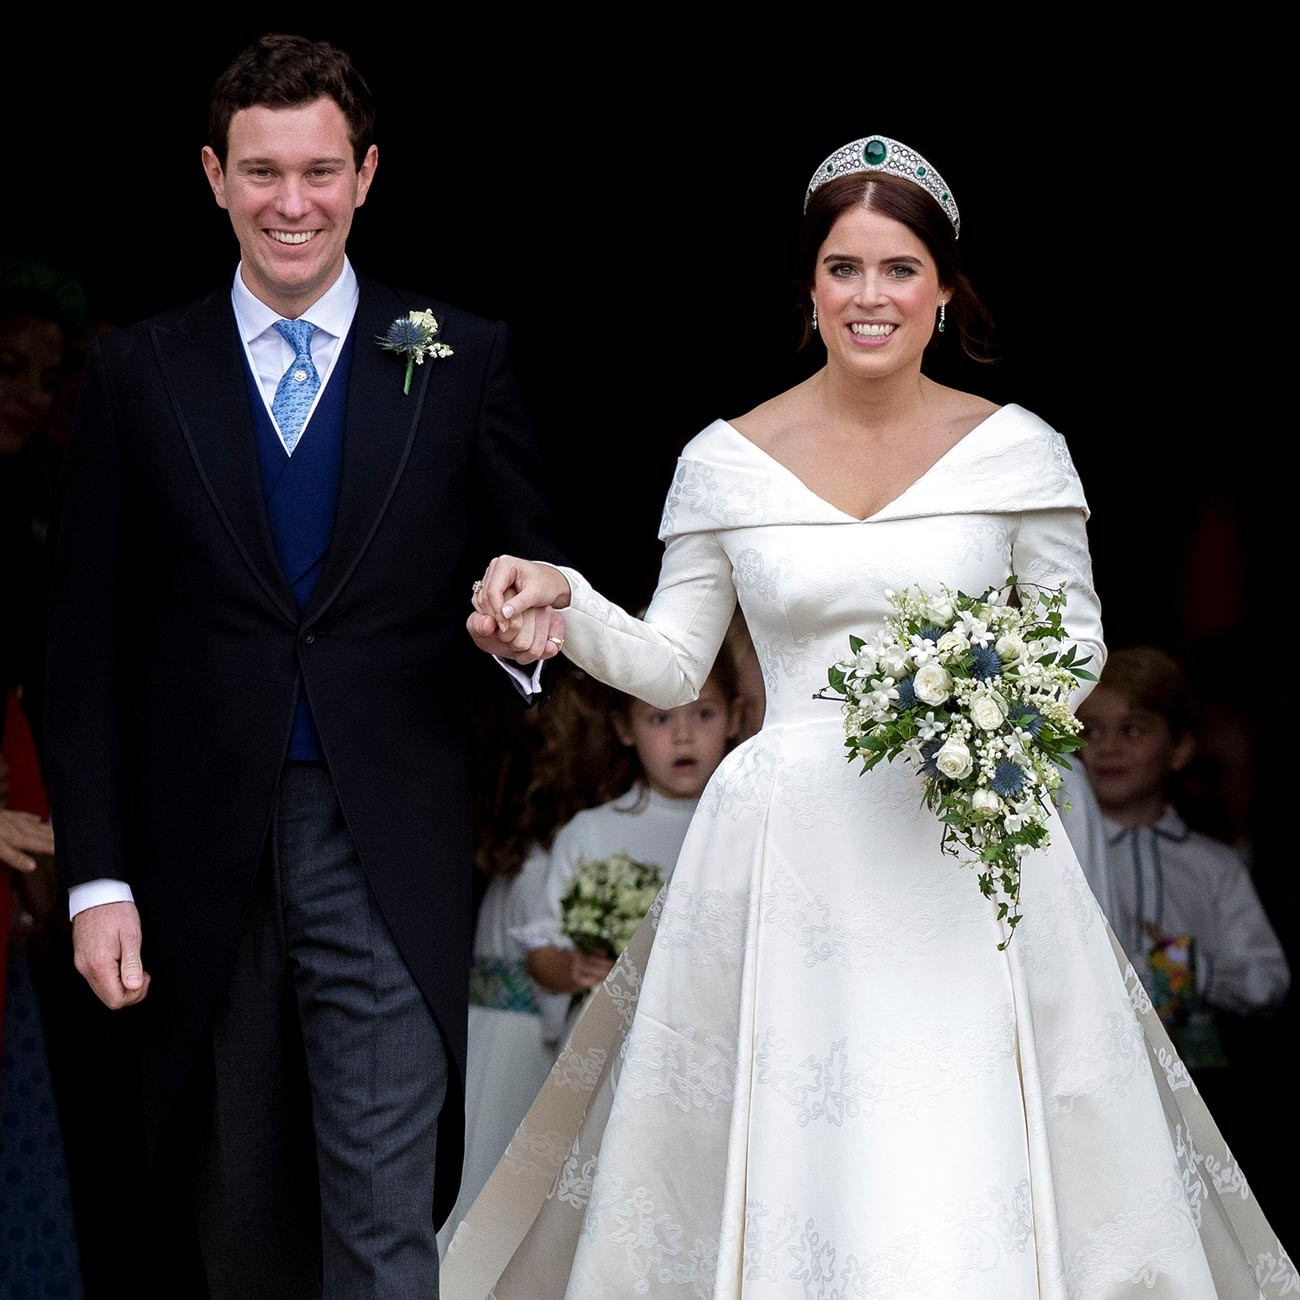 Princess Eugenie and Jack Brooksbank leave St George's Chapel in Windsor Castle following their wedding in 2018.